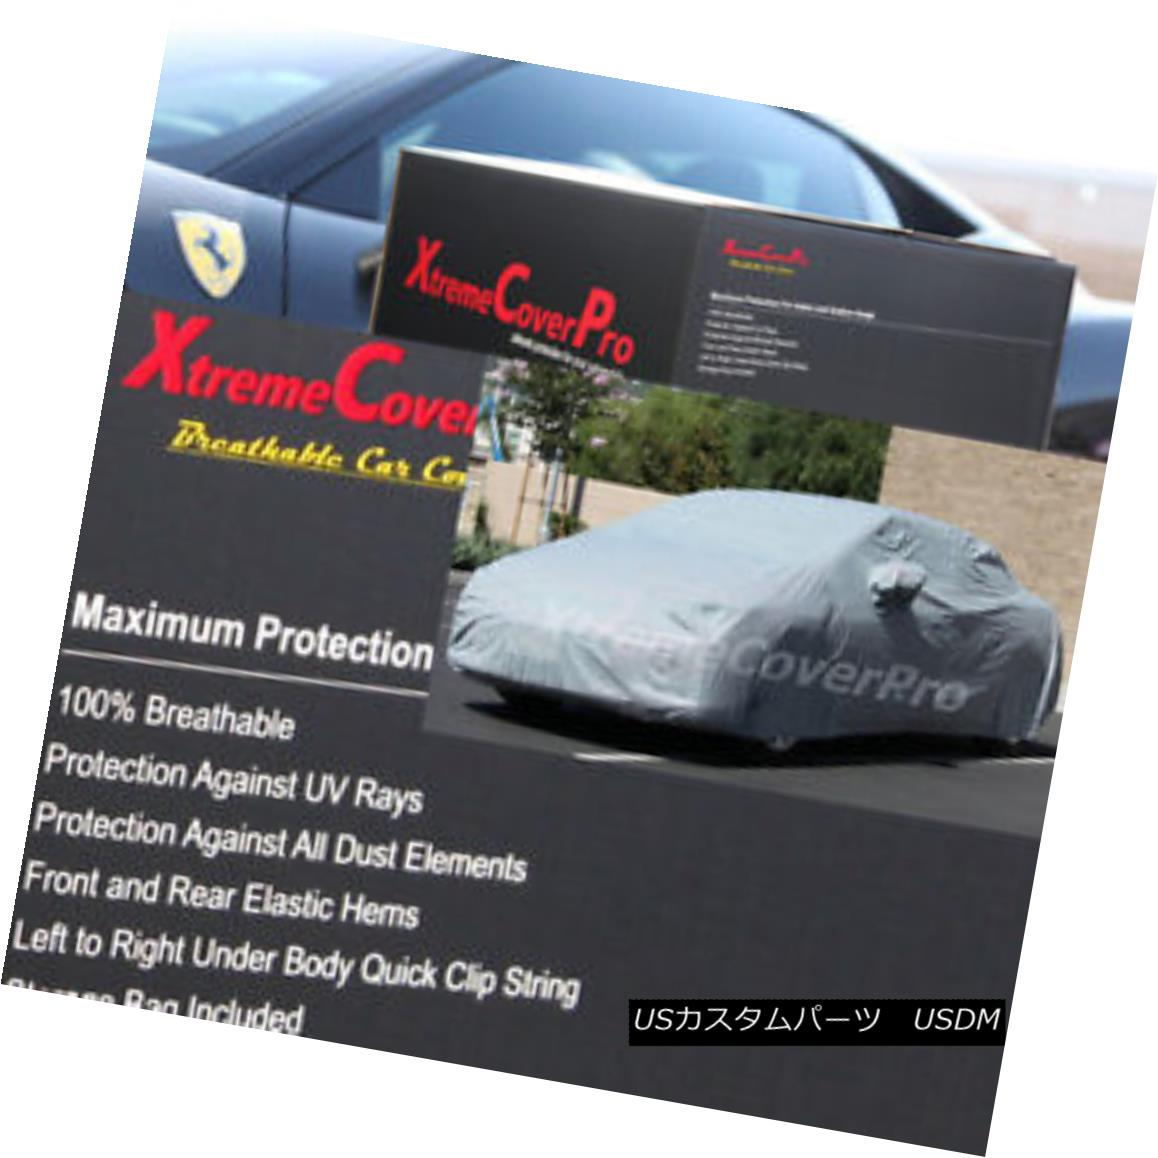 カーカバー 2000 2001 2002 Saturn LS Breathable Car Cover w/MirrorPocket 2000年2001年2002年Saturn LS通気性車カバー付きMirrorPocket